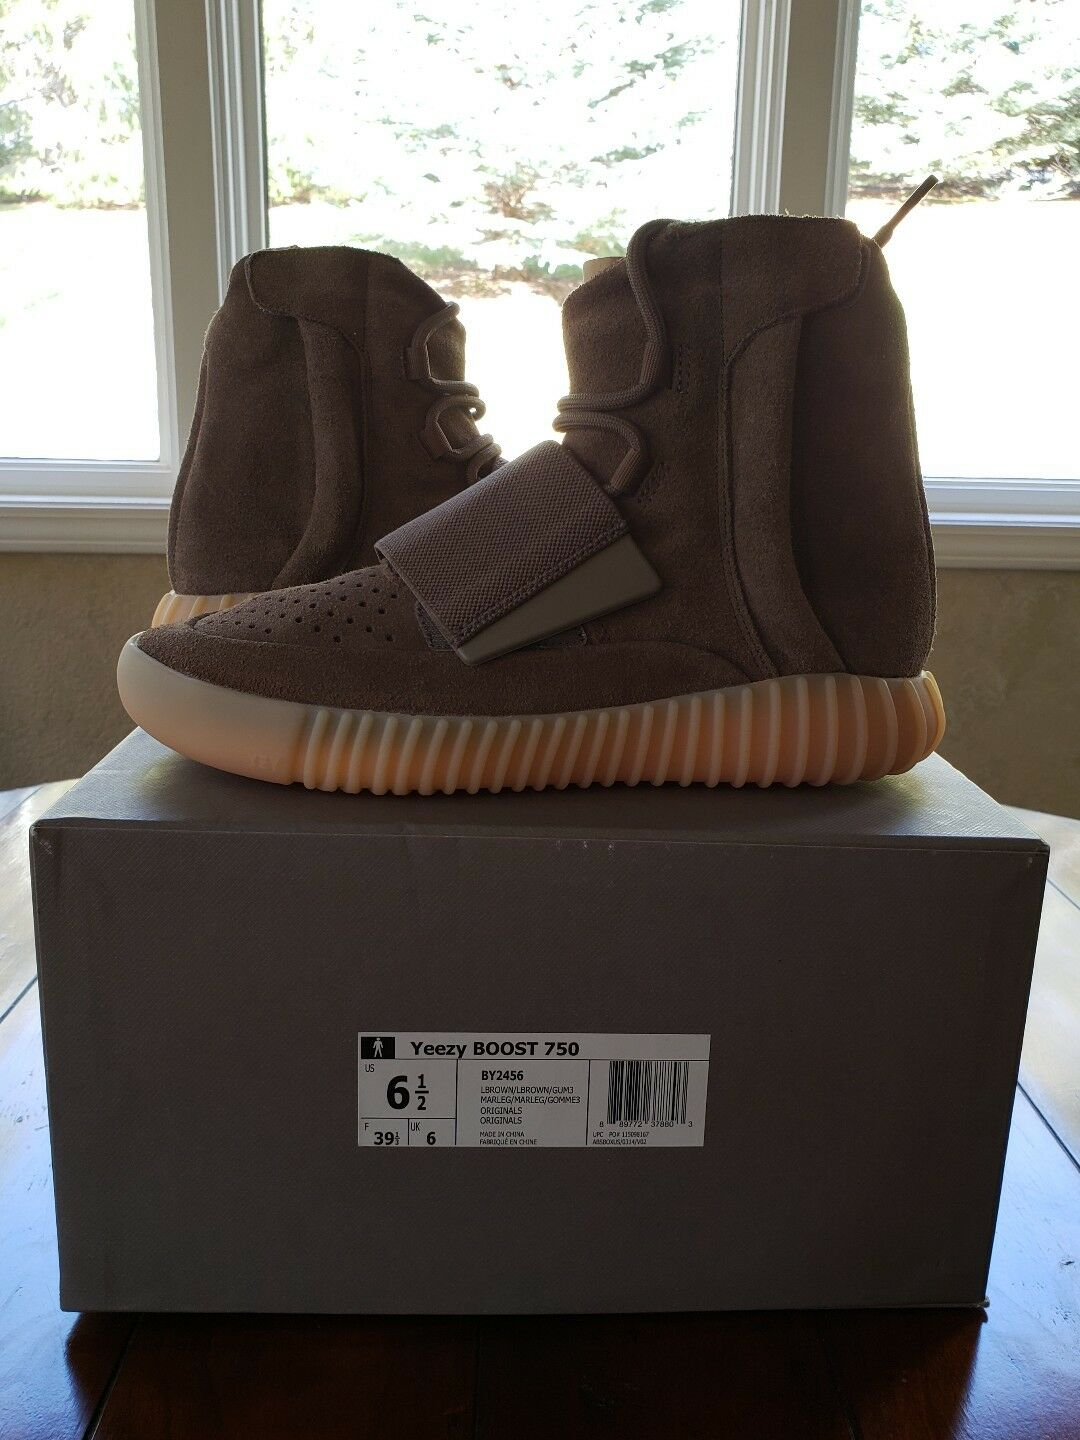 7d7428eca YEEZY BOOST 7508 6.5 BROWN CHOCOLATE BY2456 NEW ADIDAS nedkwm7310 ...